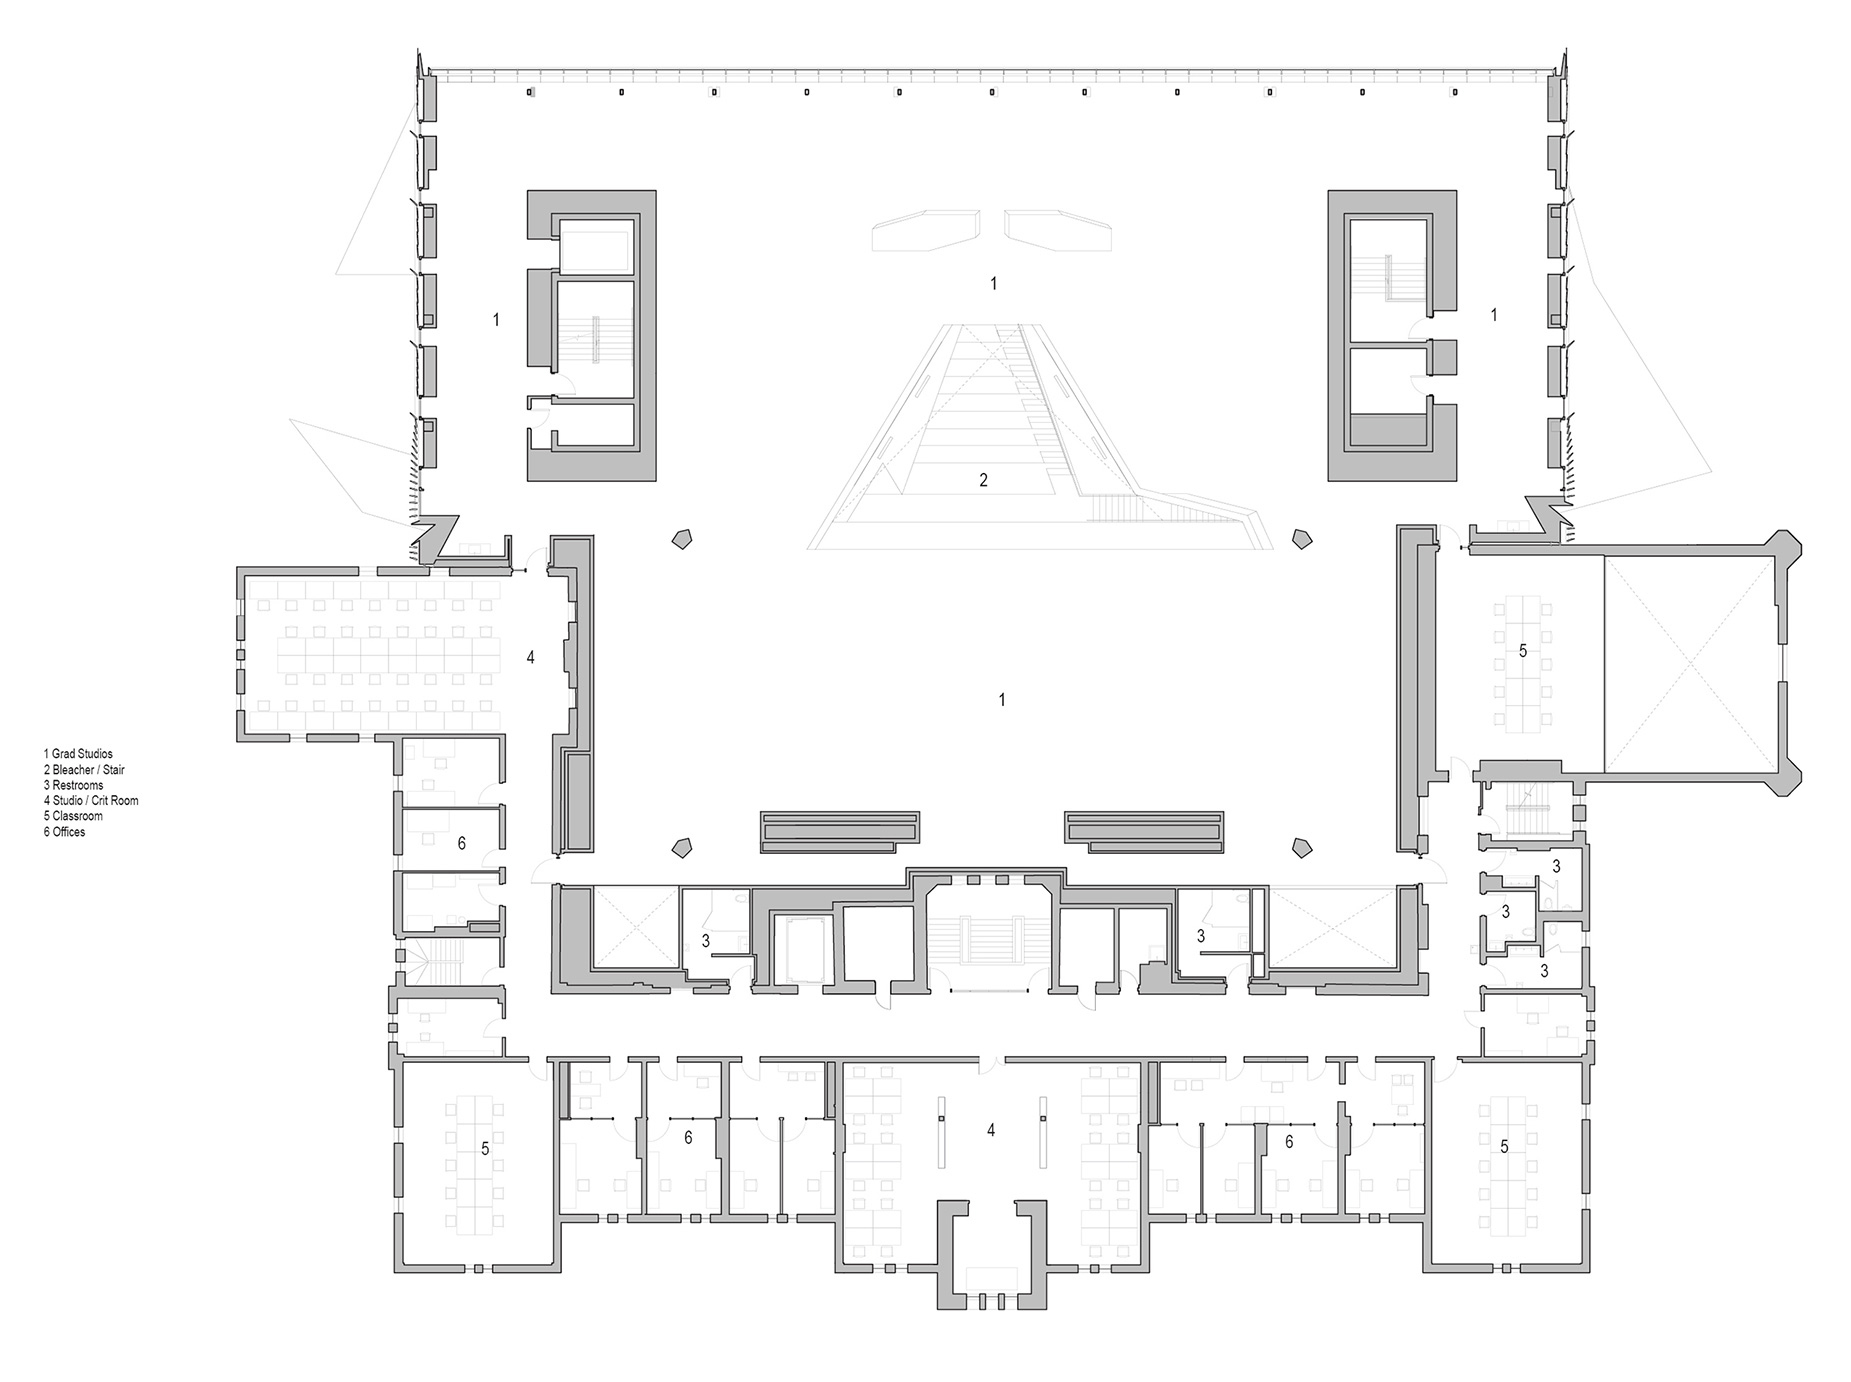 Plan - Level 3 | Daniels Faculty of Architecture | NADAAA architects | Canada | STIRworld